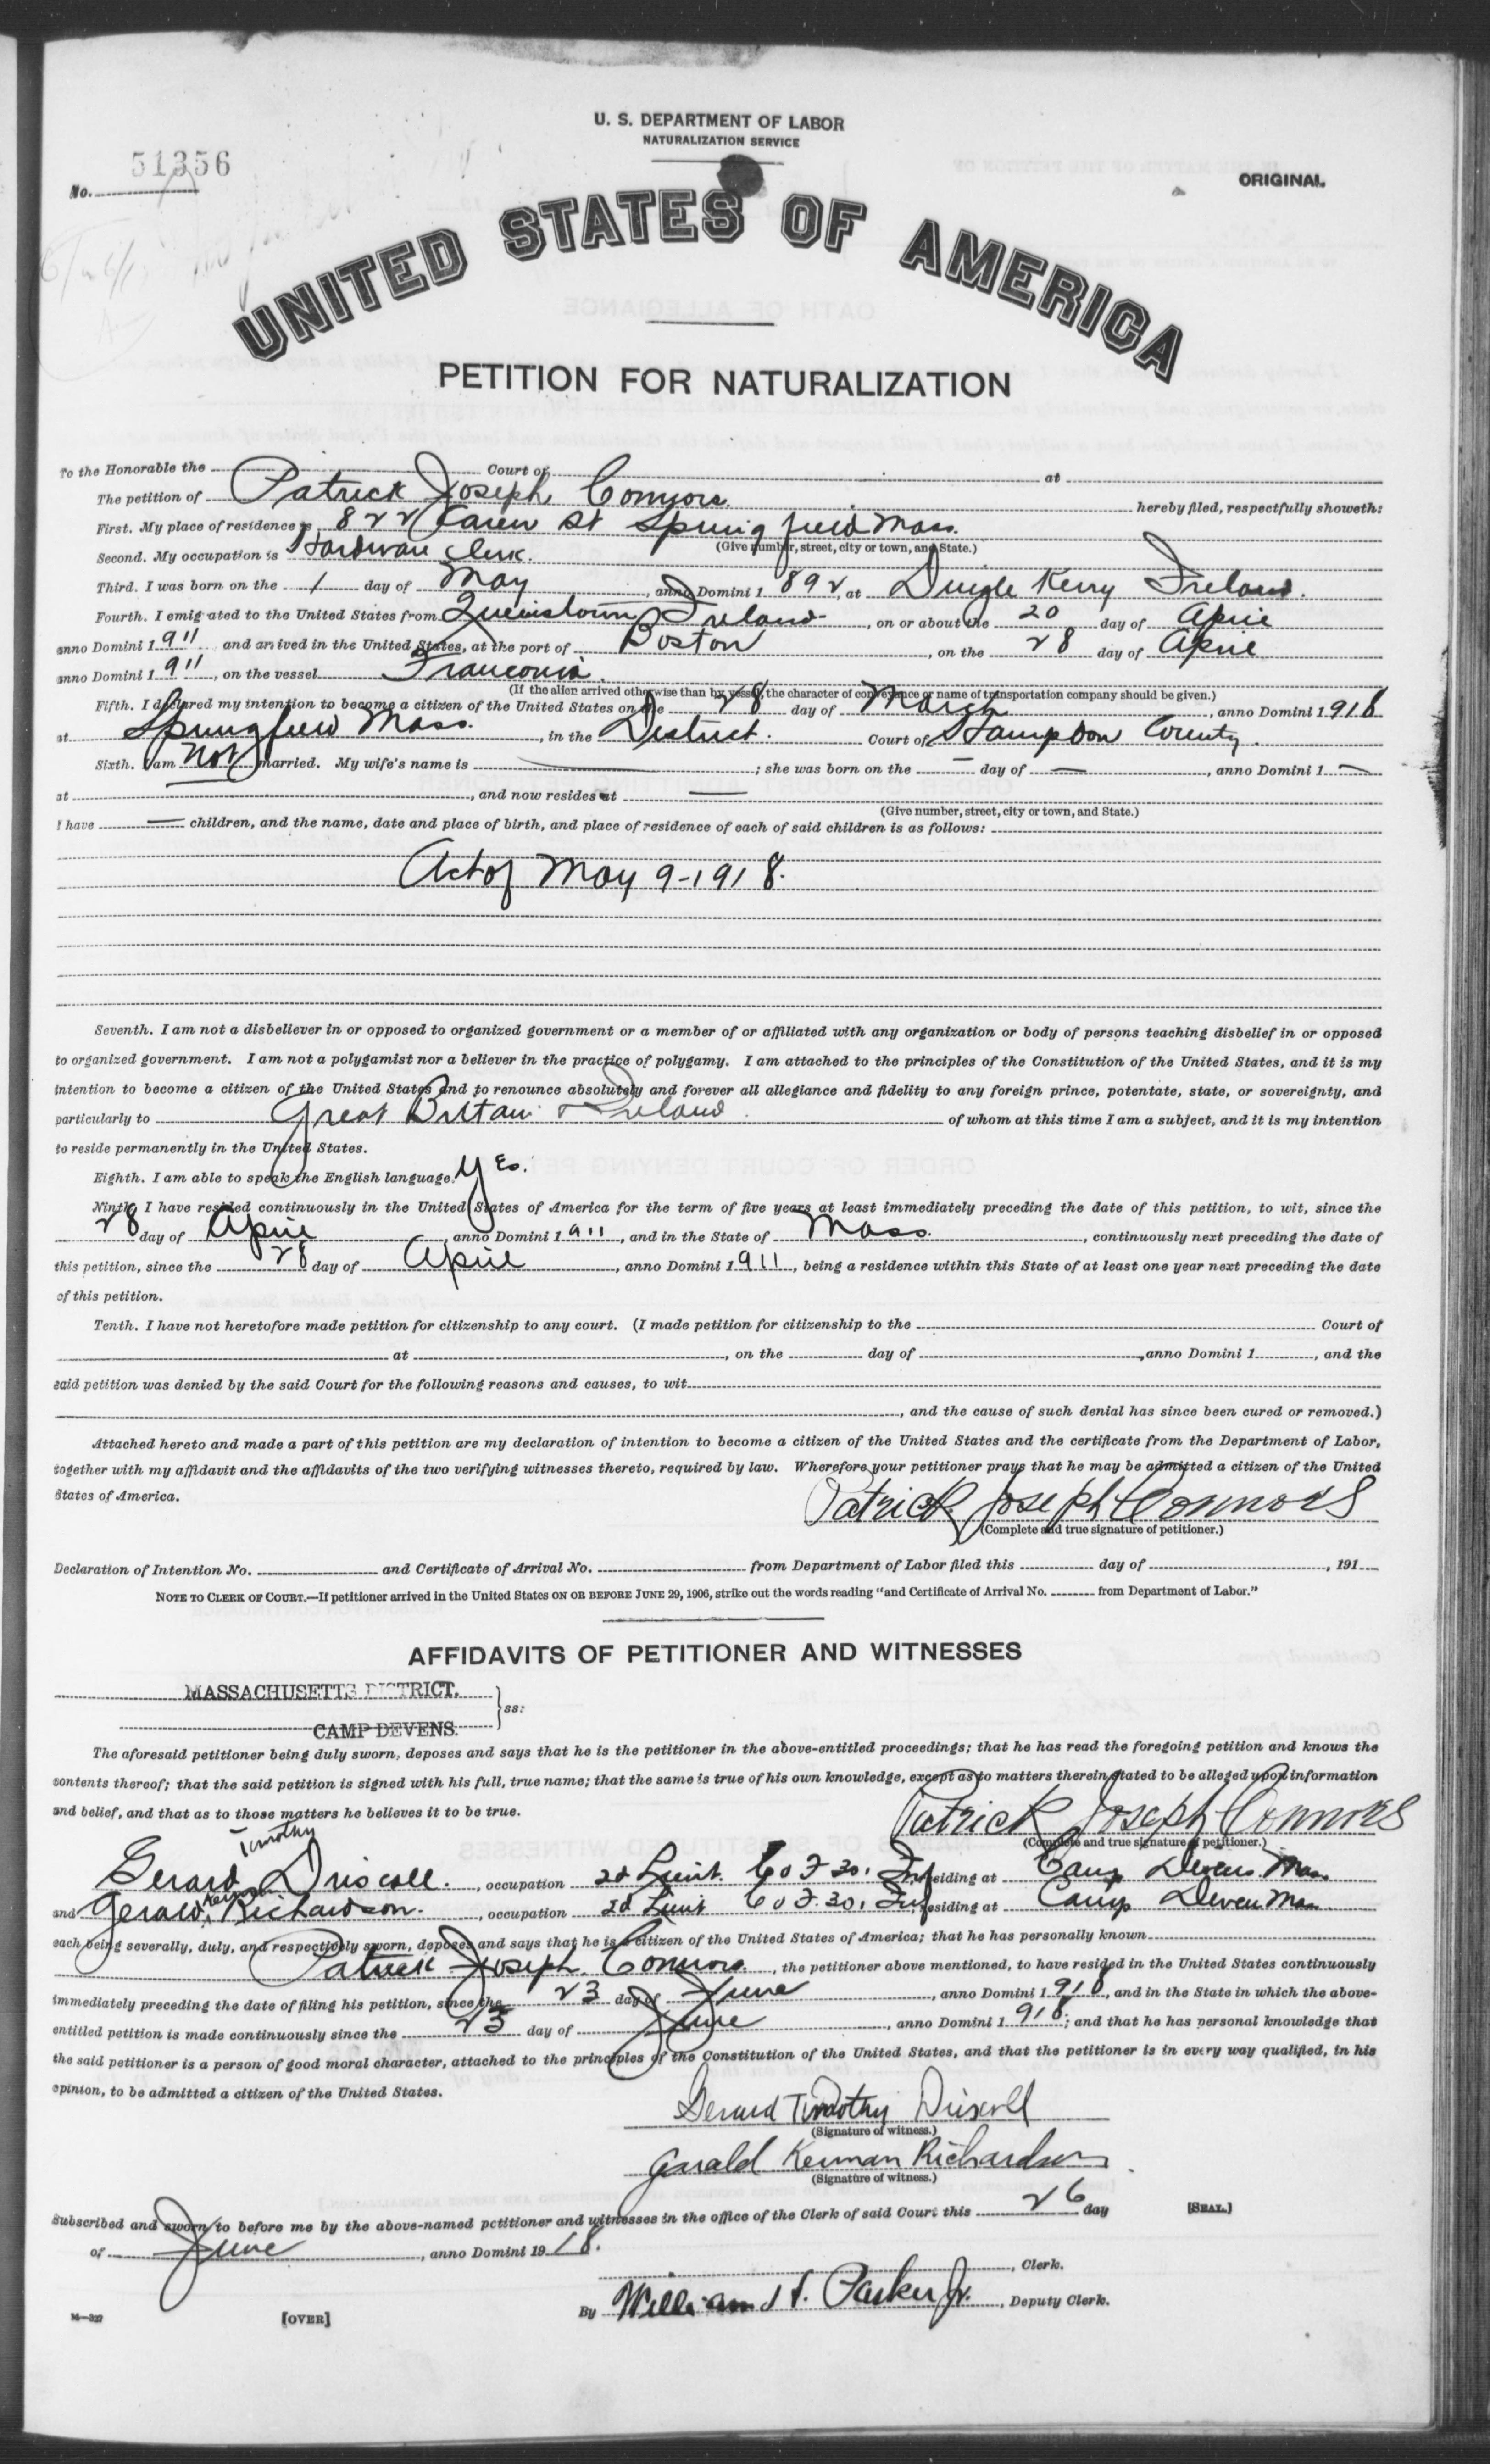 Petition for Naturalization of Patrick Joseph Connors